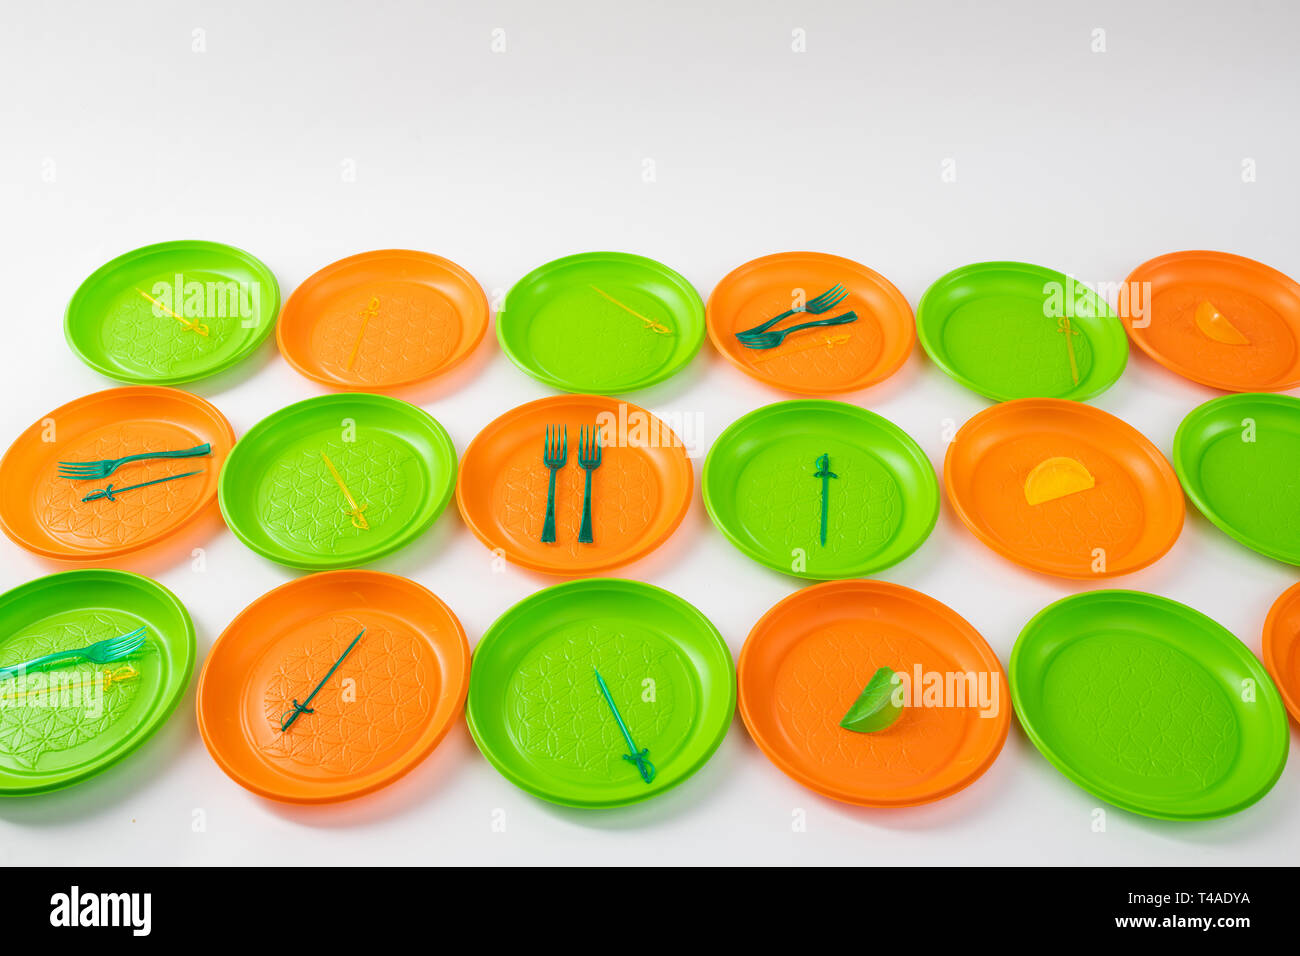 Colorful bright plastic plates setting apart and having forks and skewers - Stock Image